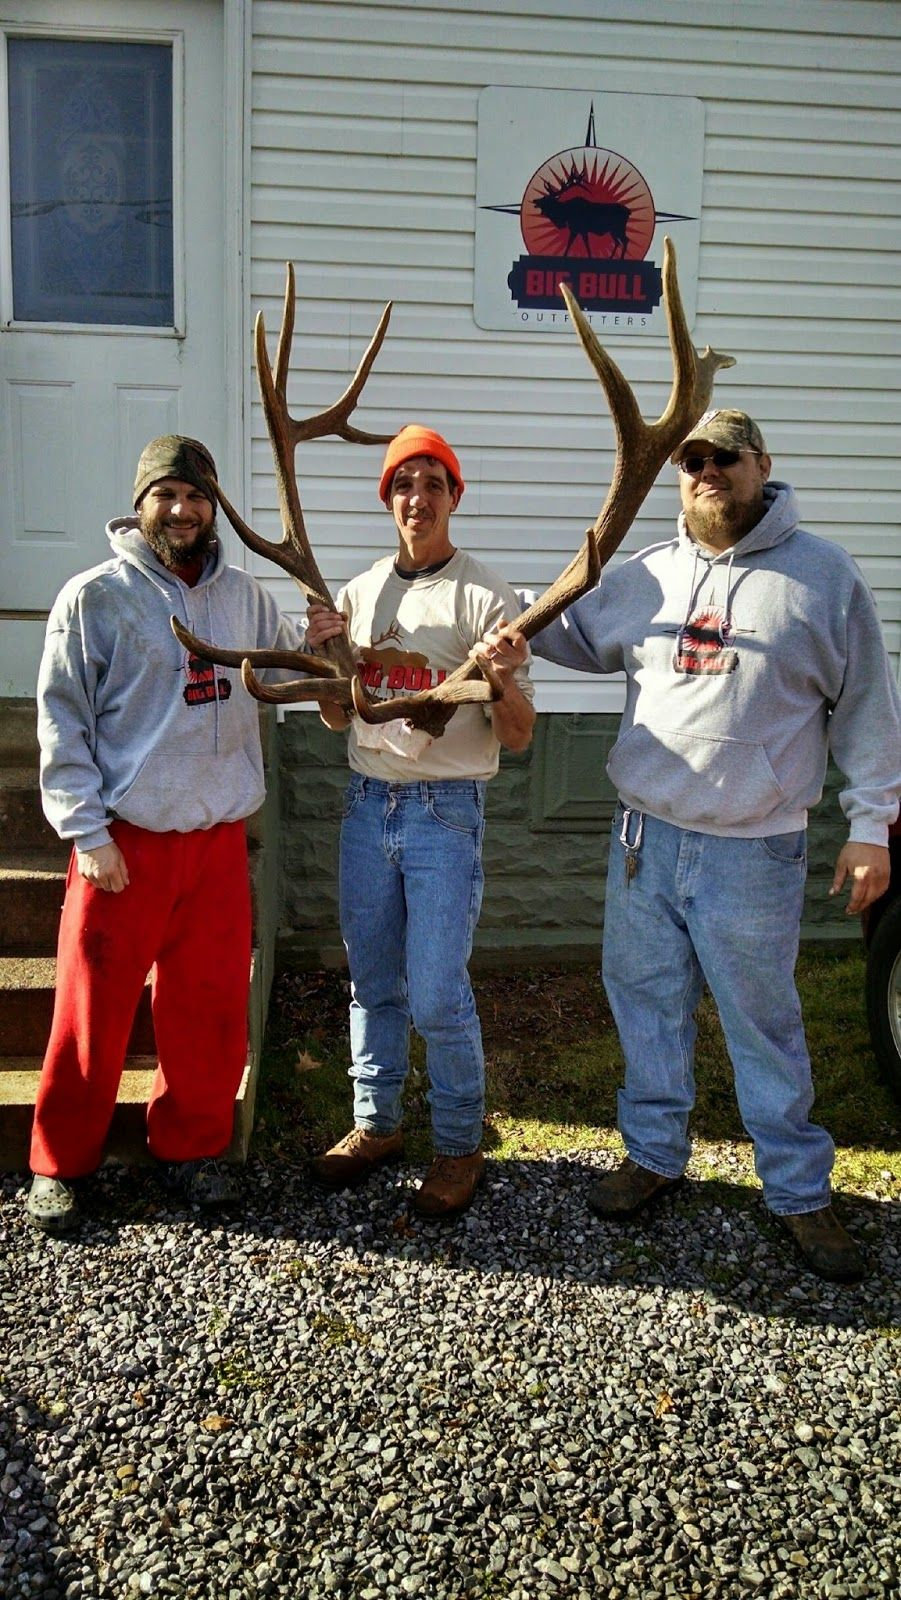 BIG BULL OUTFITTERS of Byrnedale, PA: